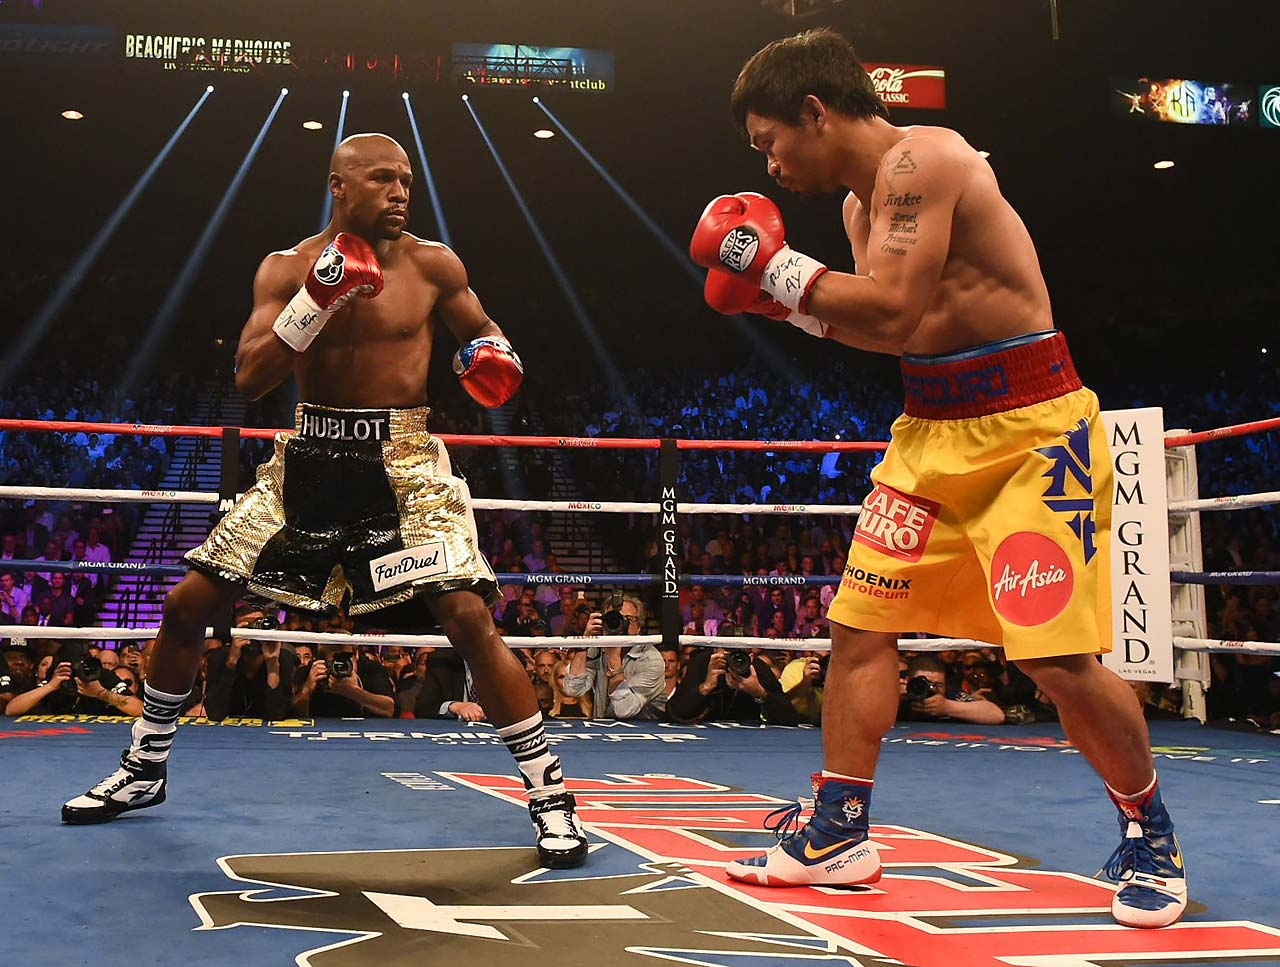 After the fight, it was disclosed that Pacquiao injured his right shoulder in training and that Nevada boxing commissioners denied his request to take an anti-inflammatory shot in his dressing room before the fight. (AP)